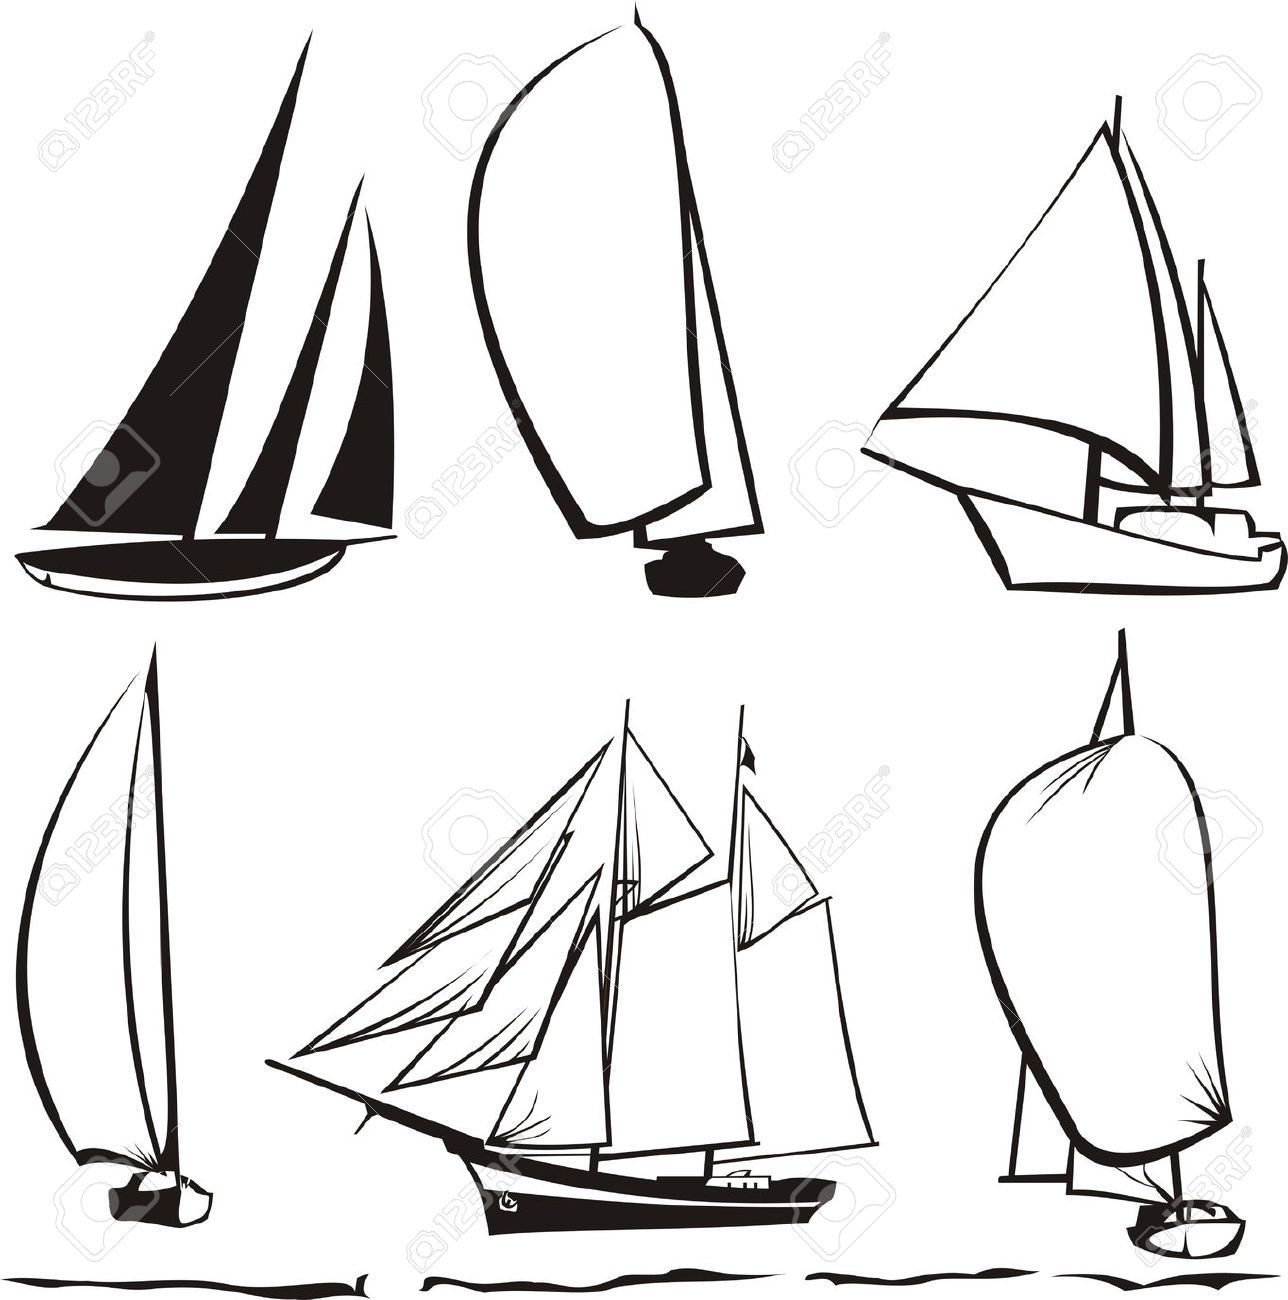 Sailboat Line Drawing Google Search Dessin De Bateau Dessin